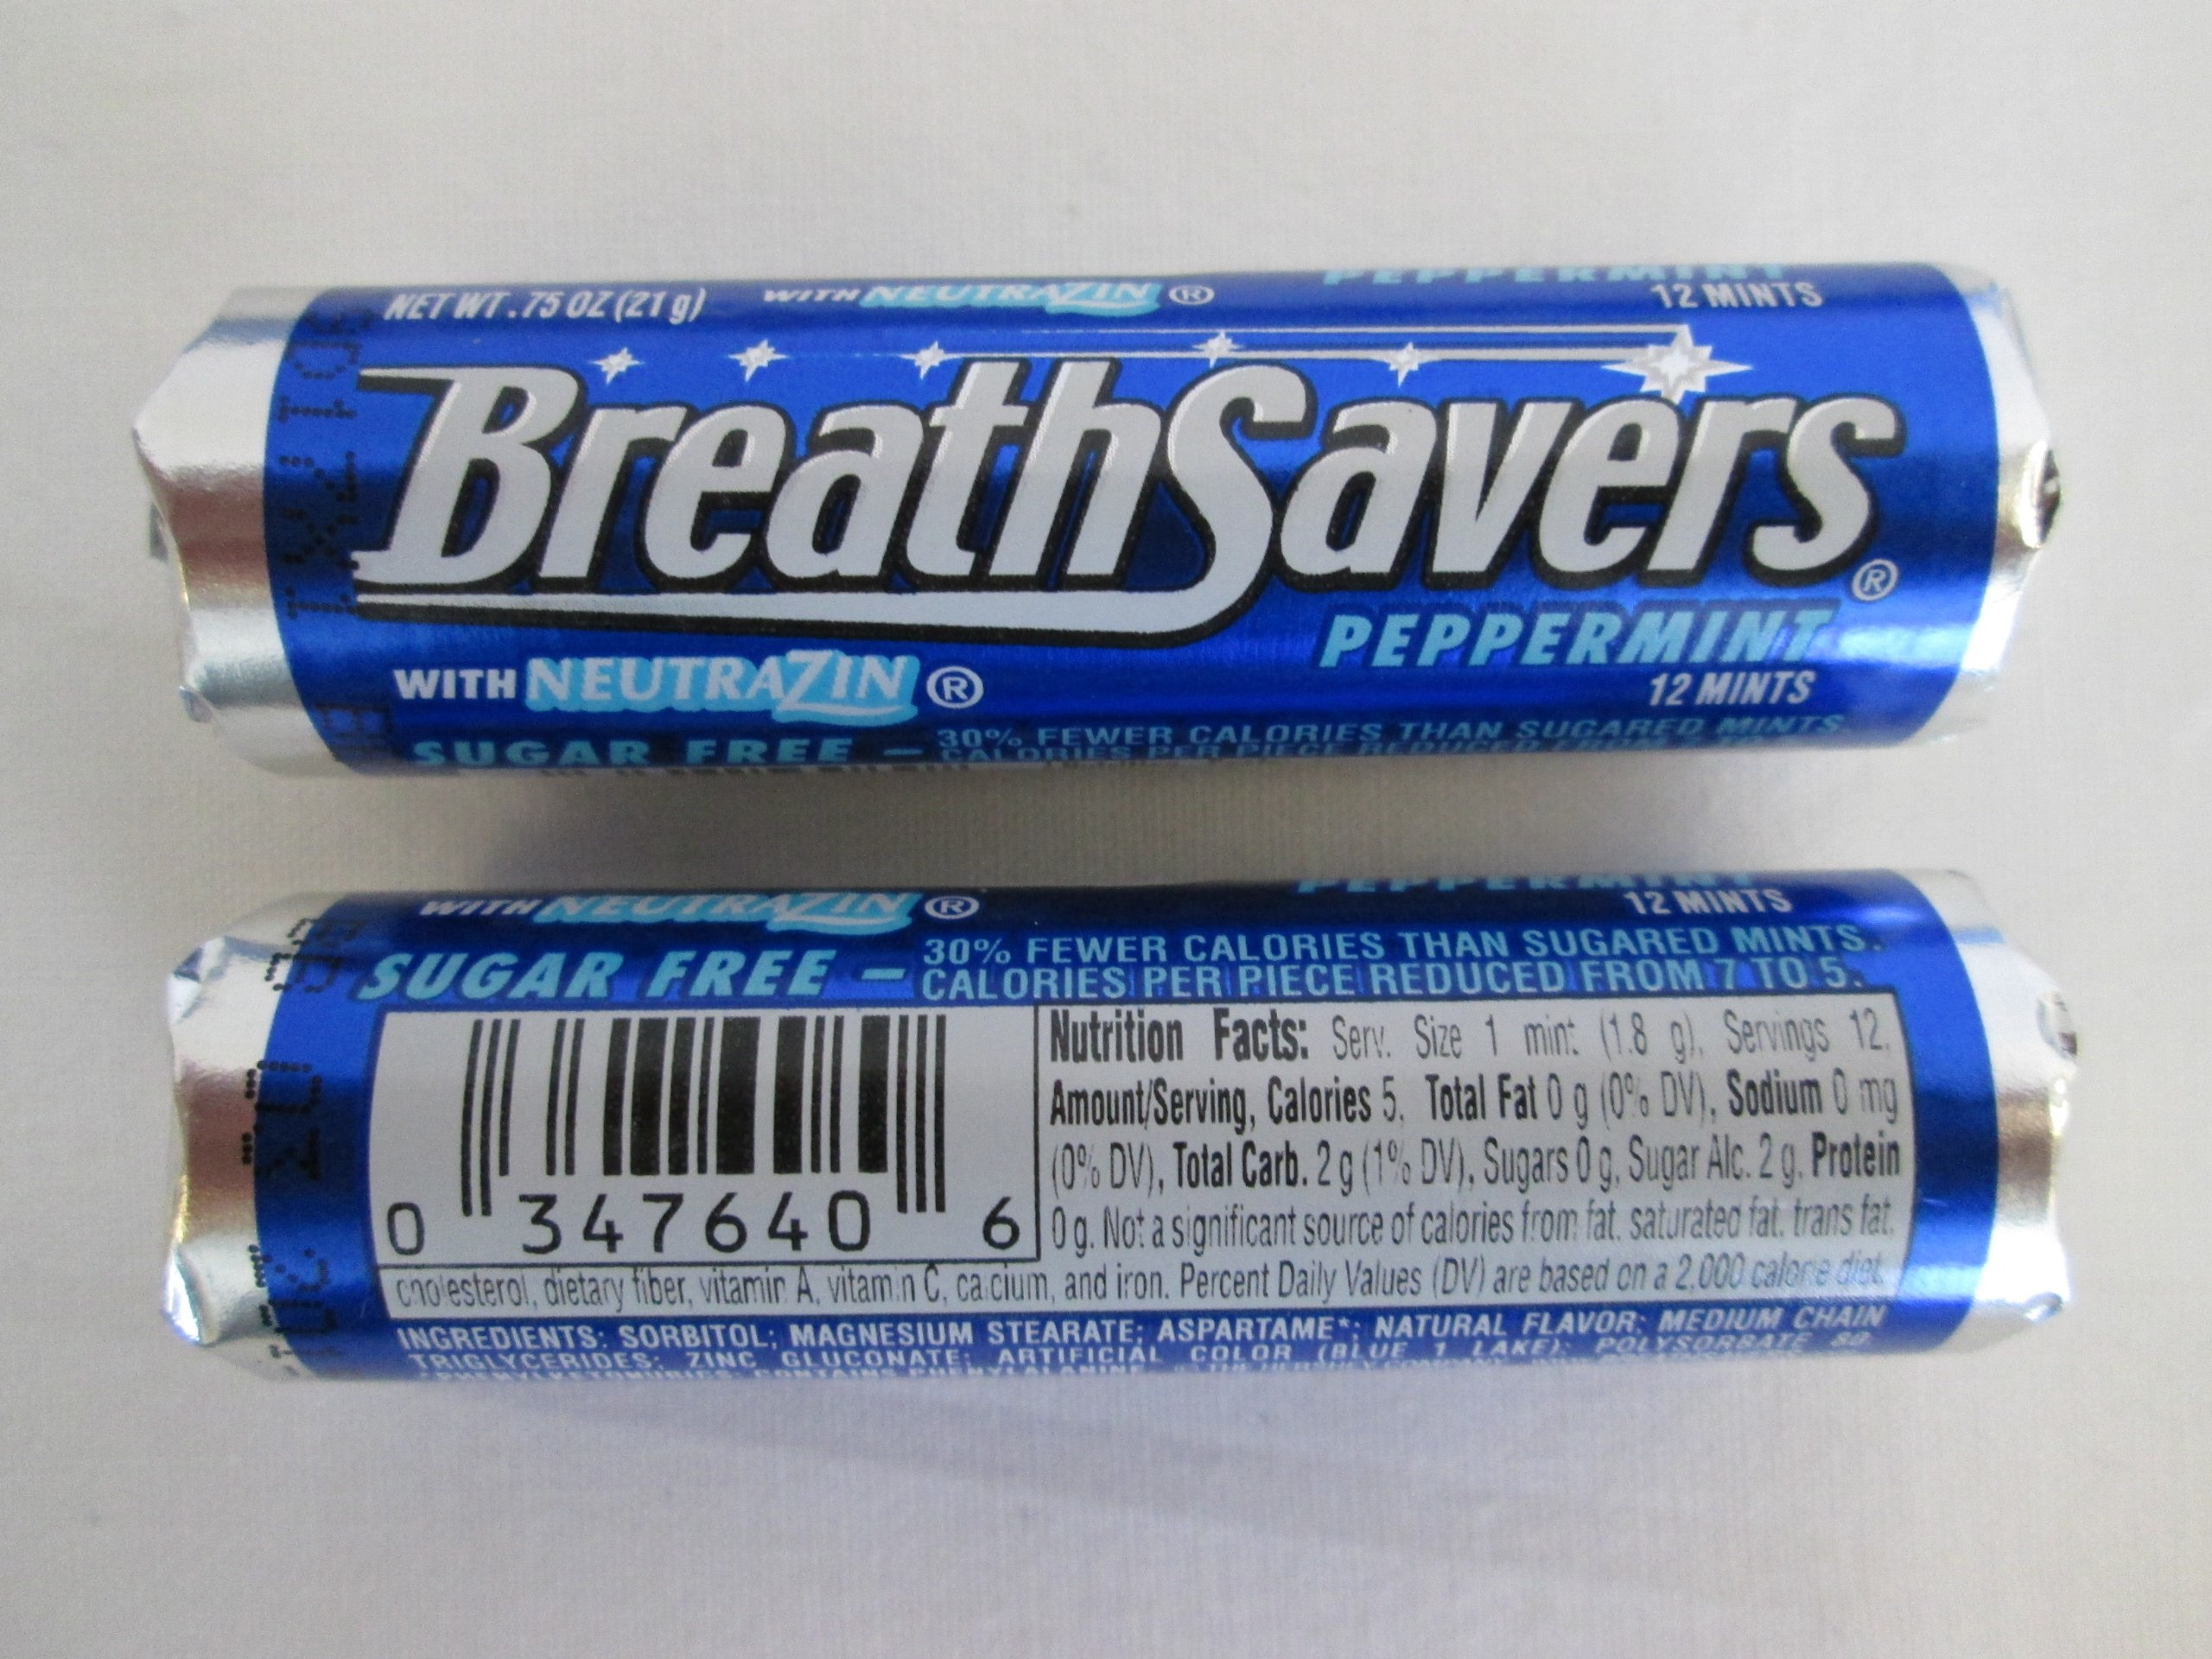 Breathsavers Peppermint Rolled mints, 12 per roll (Pack of 48) by Breath Savers (Image #2)